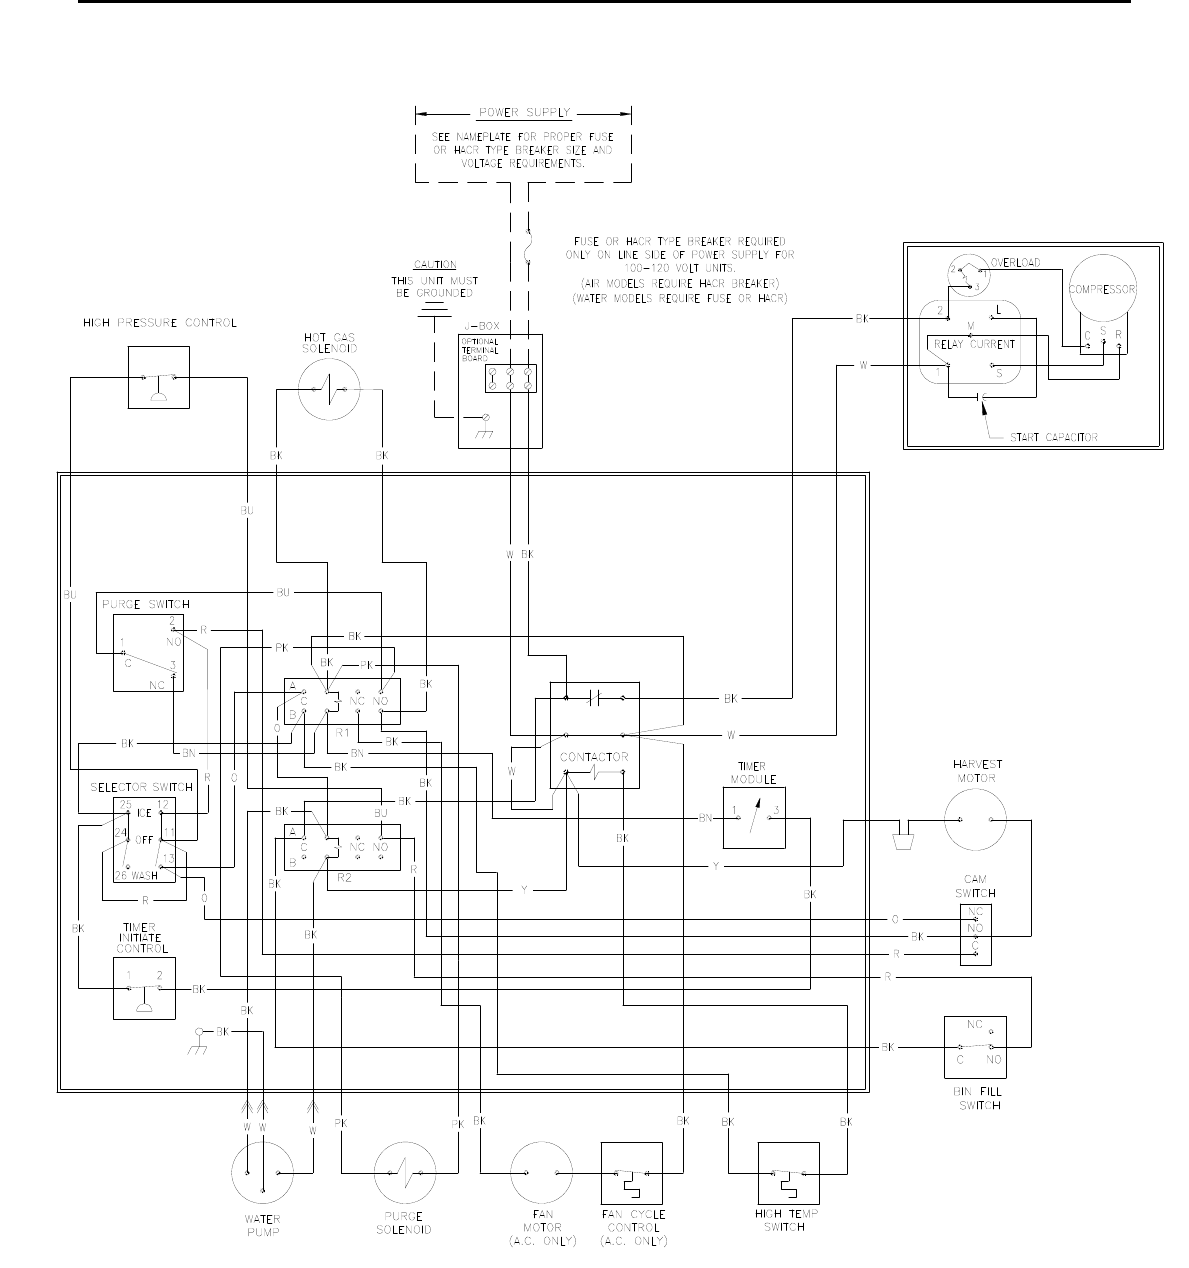 Wiring Diagram On An Older Model Ice O Matic Free Download Page 138 Of Maker Ice0250 Series User Guide At